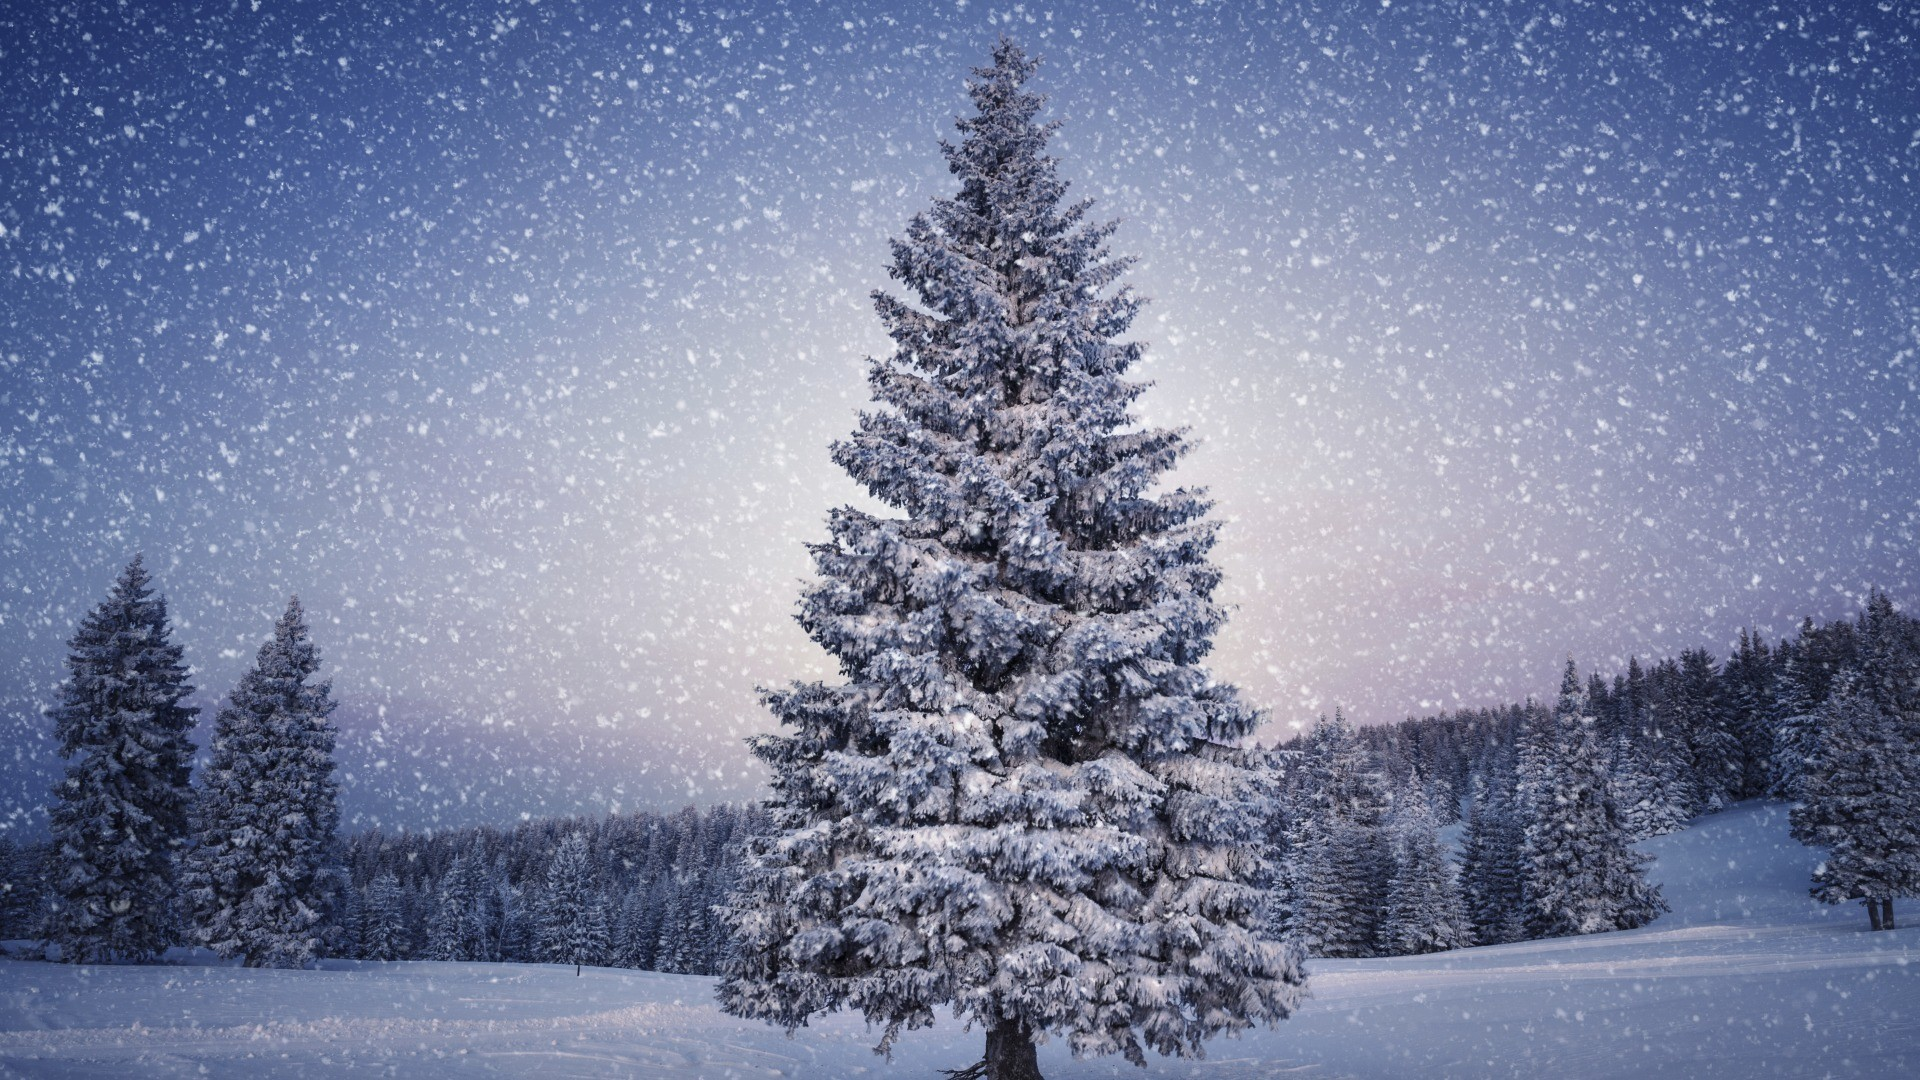 Snowy scene wallpaper 54 pictures christmas snow scene 1920x1080 voltagebd Image collections